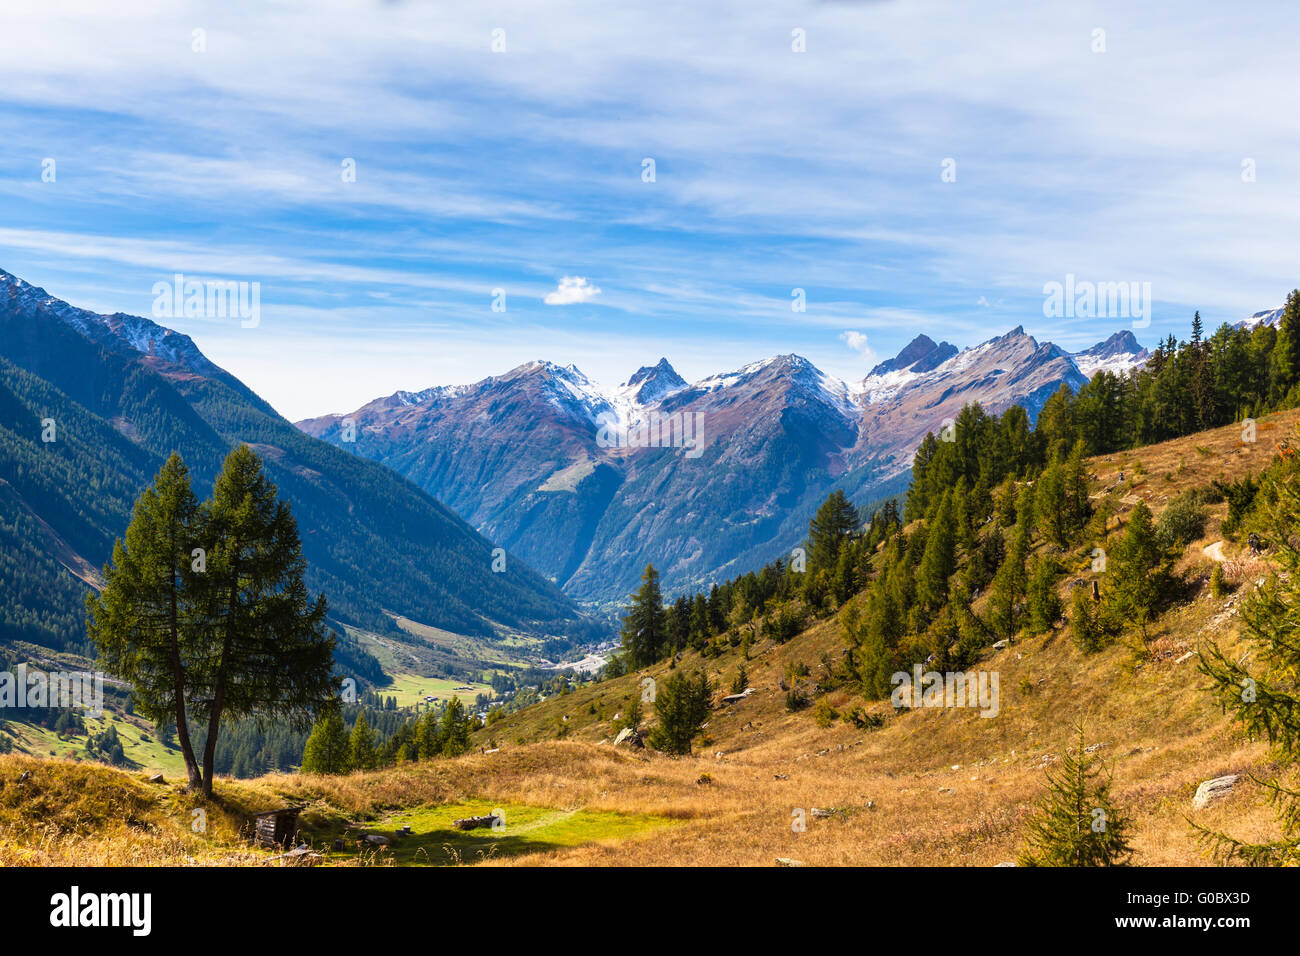 Panorama view of the Loetschental valley and the mountain range of alps in canton of Valais from the hiking path - Stock Image